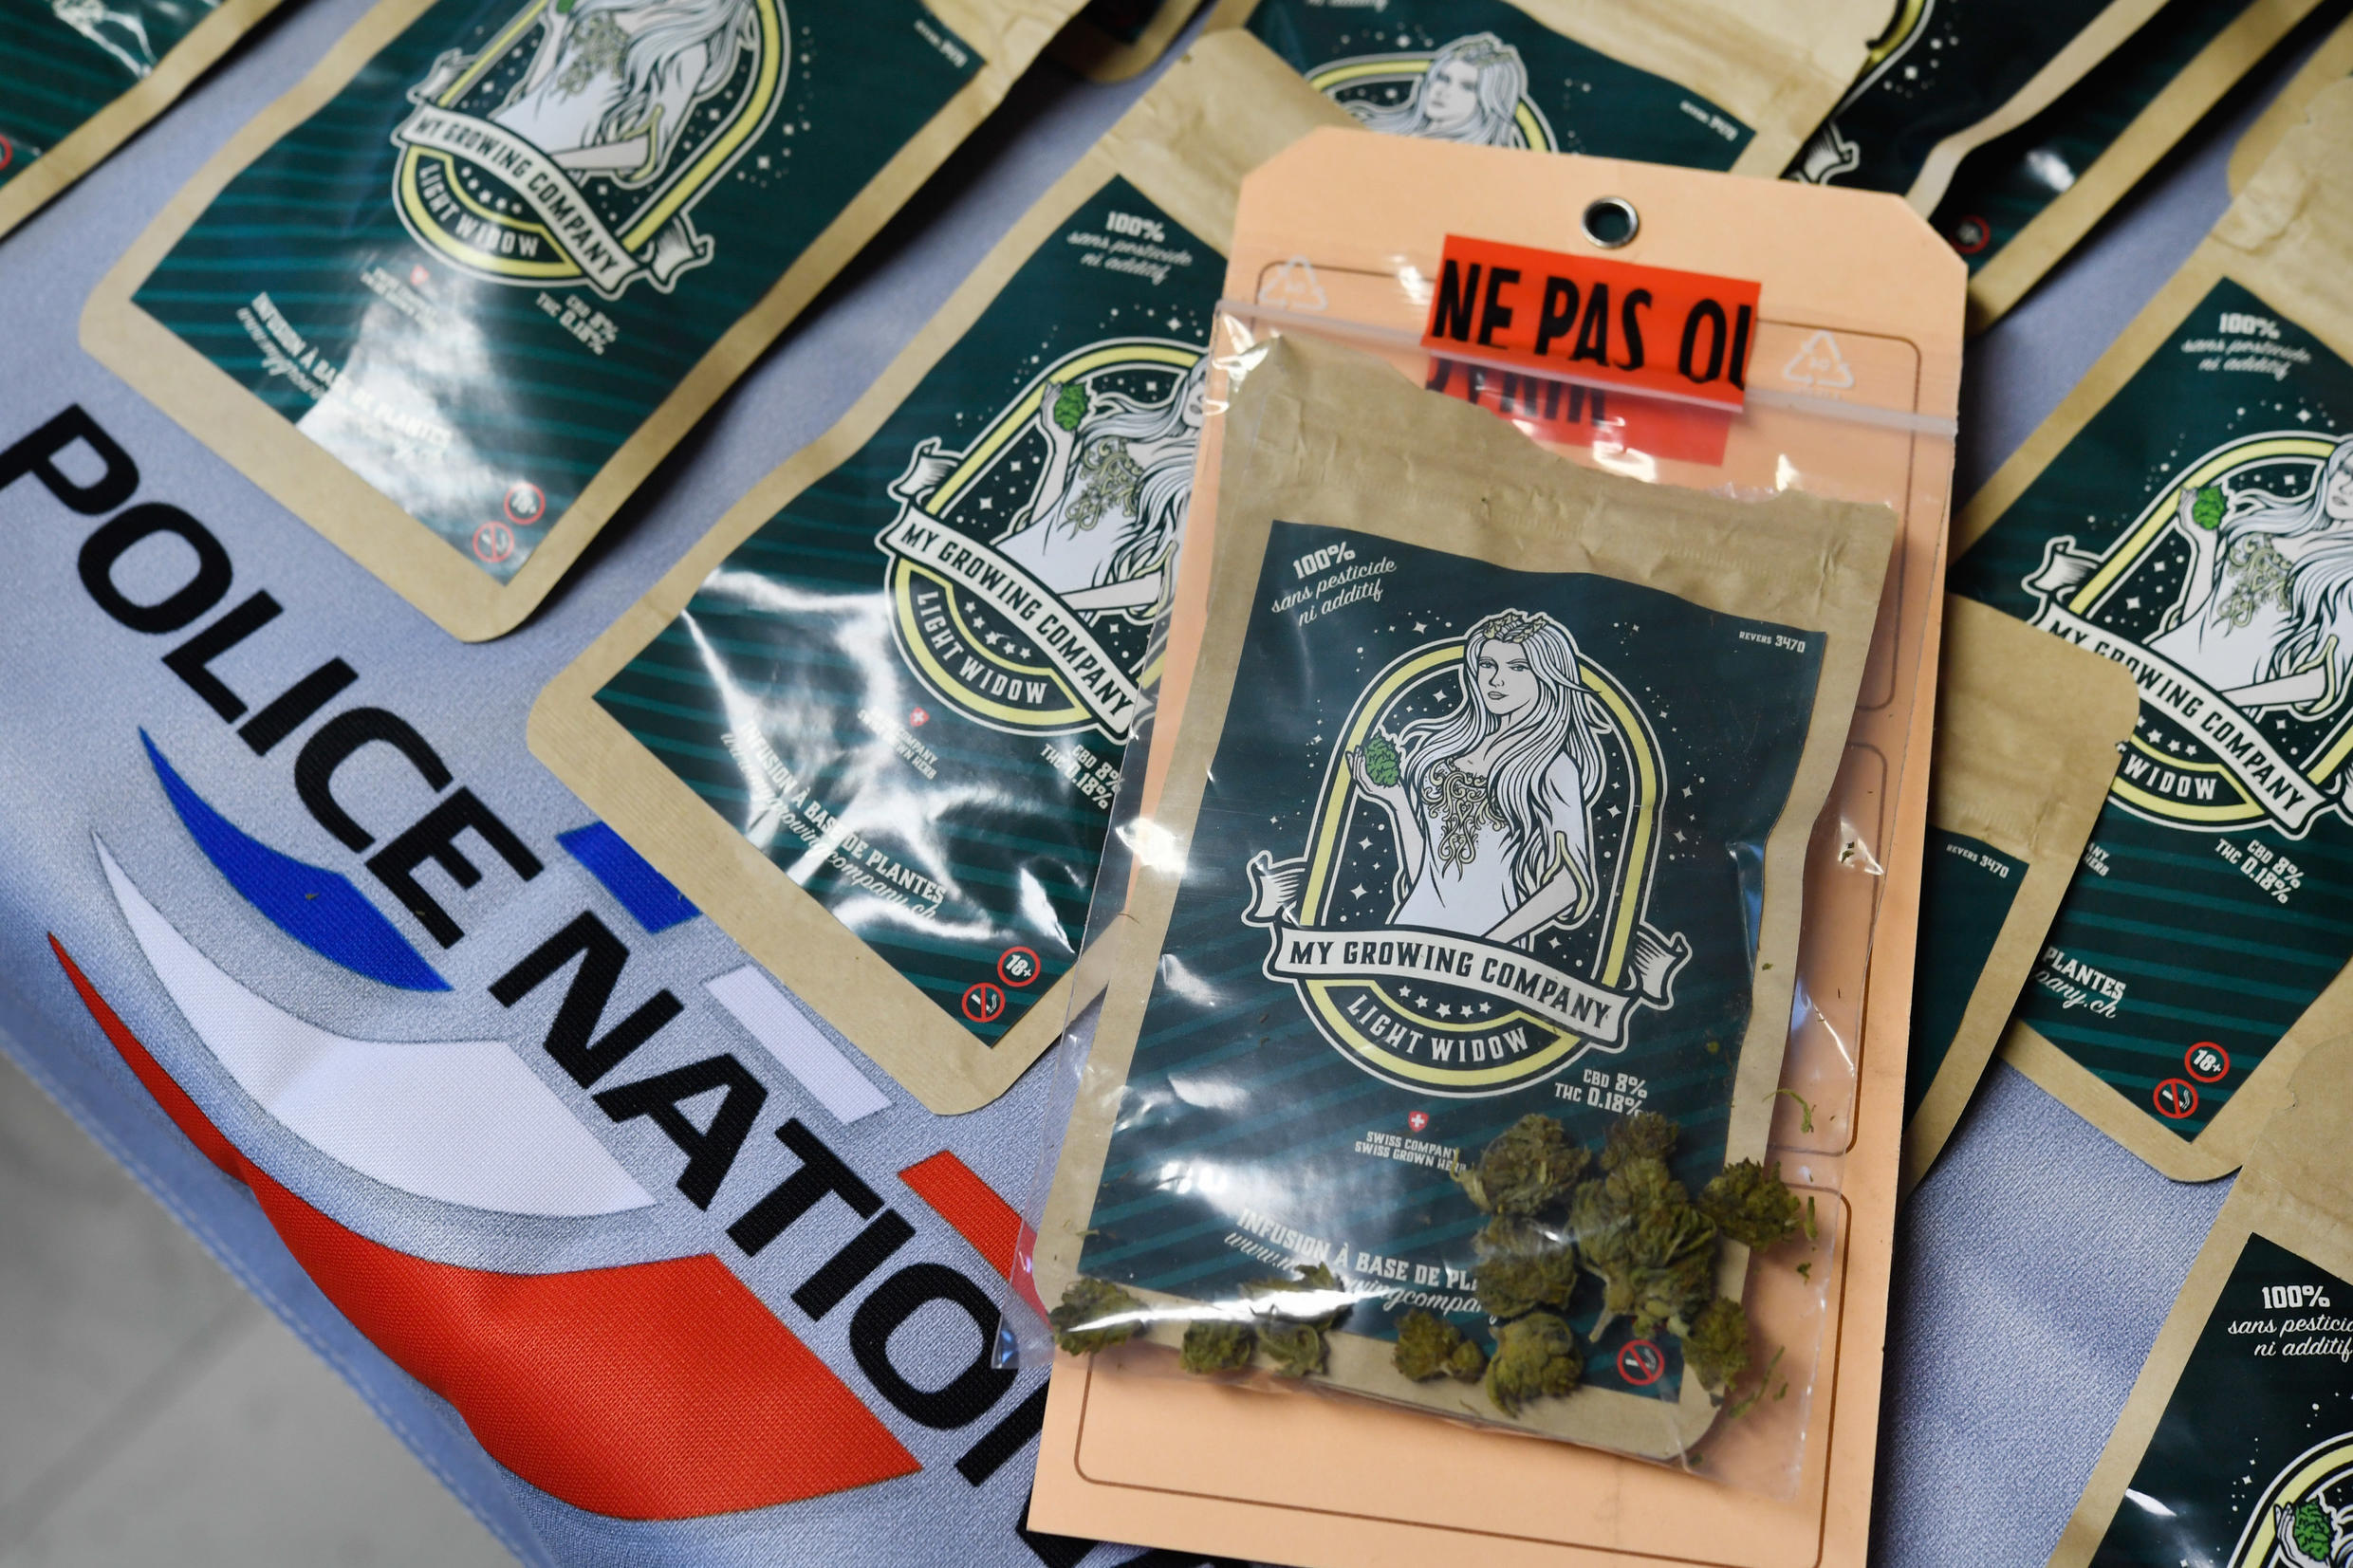 Tea bags containing cannabis flowers that were meant to be sold as herbal tea are pictured at a police station in Brest, western France, on August 1, 2018.